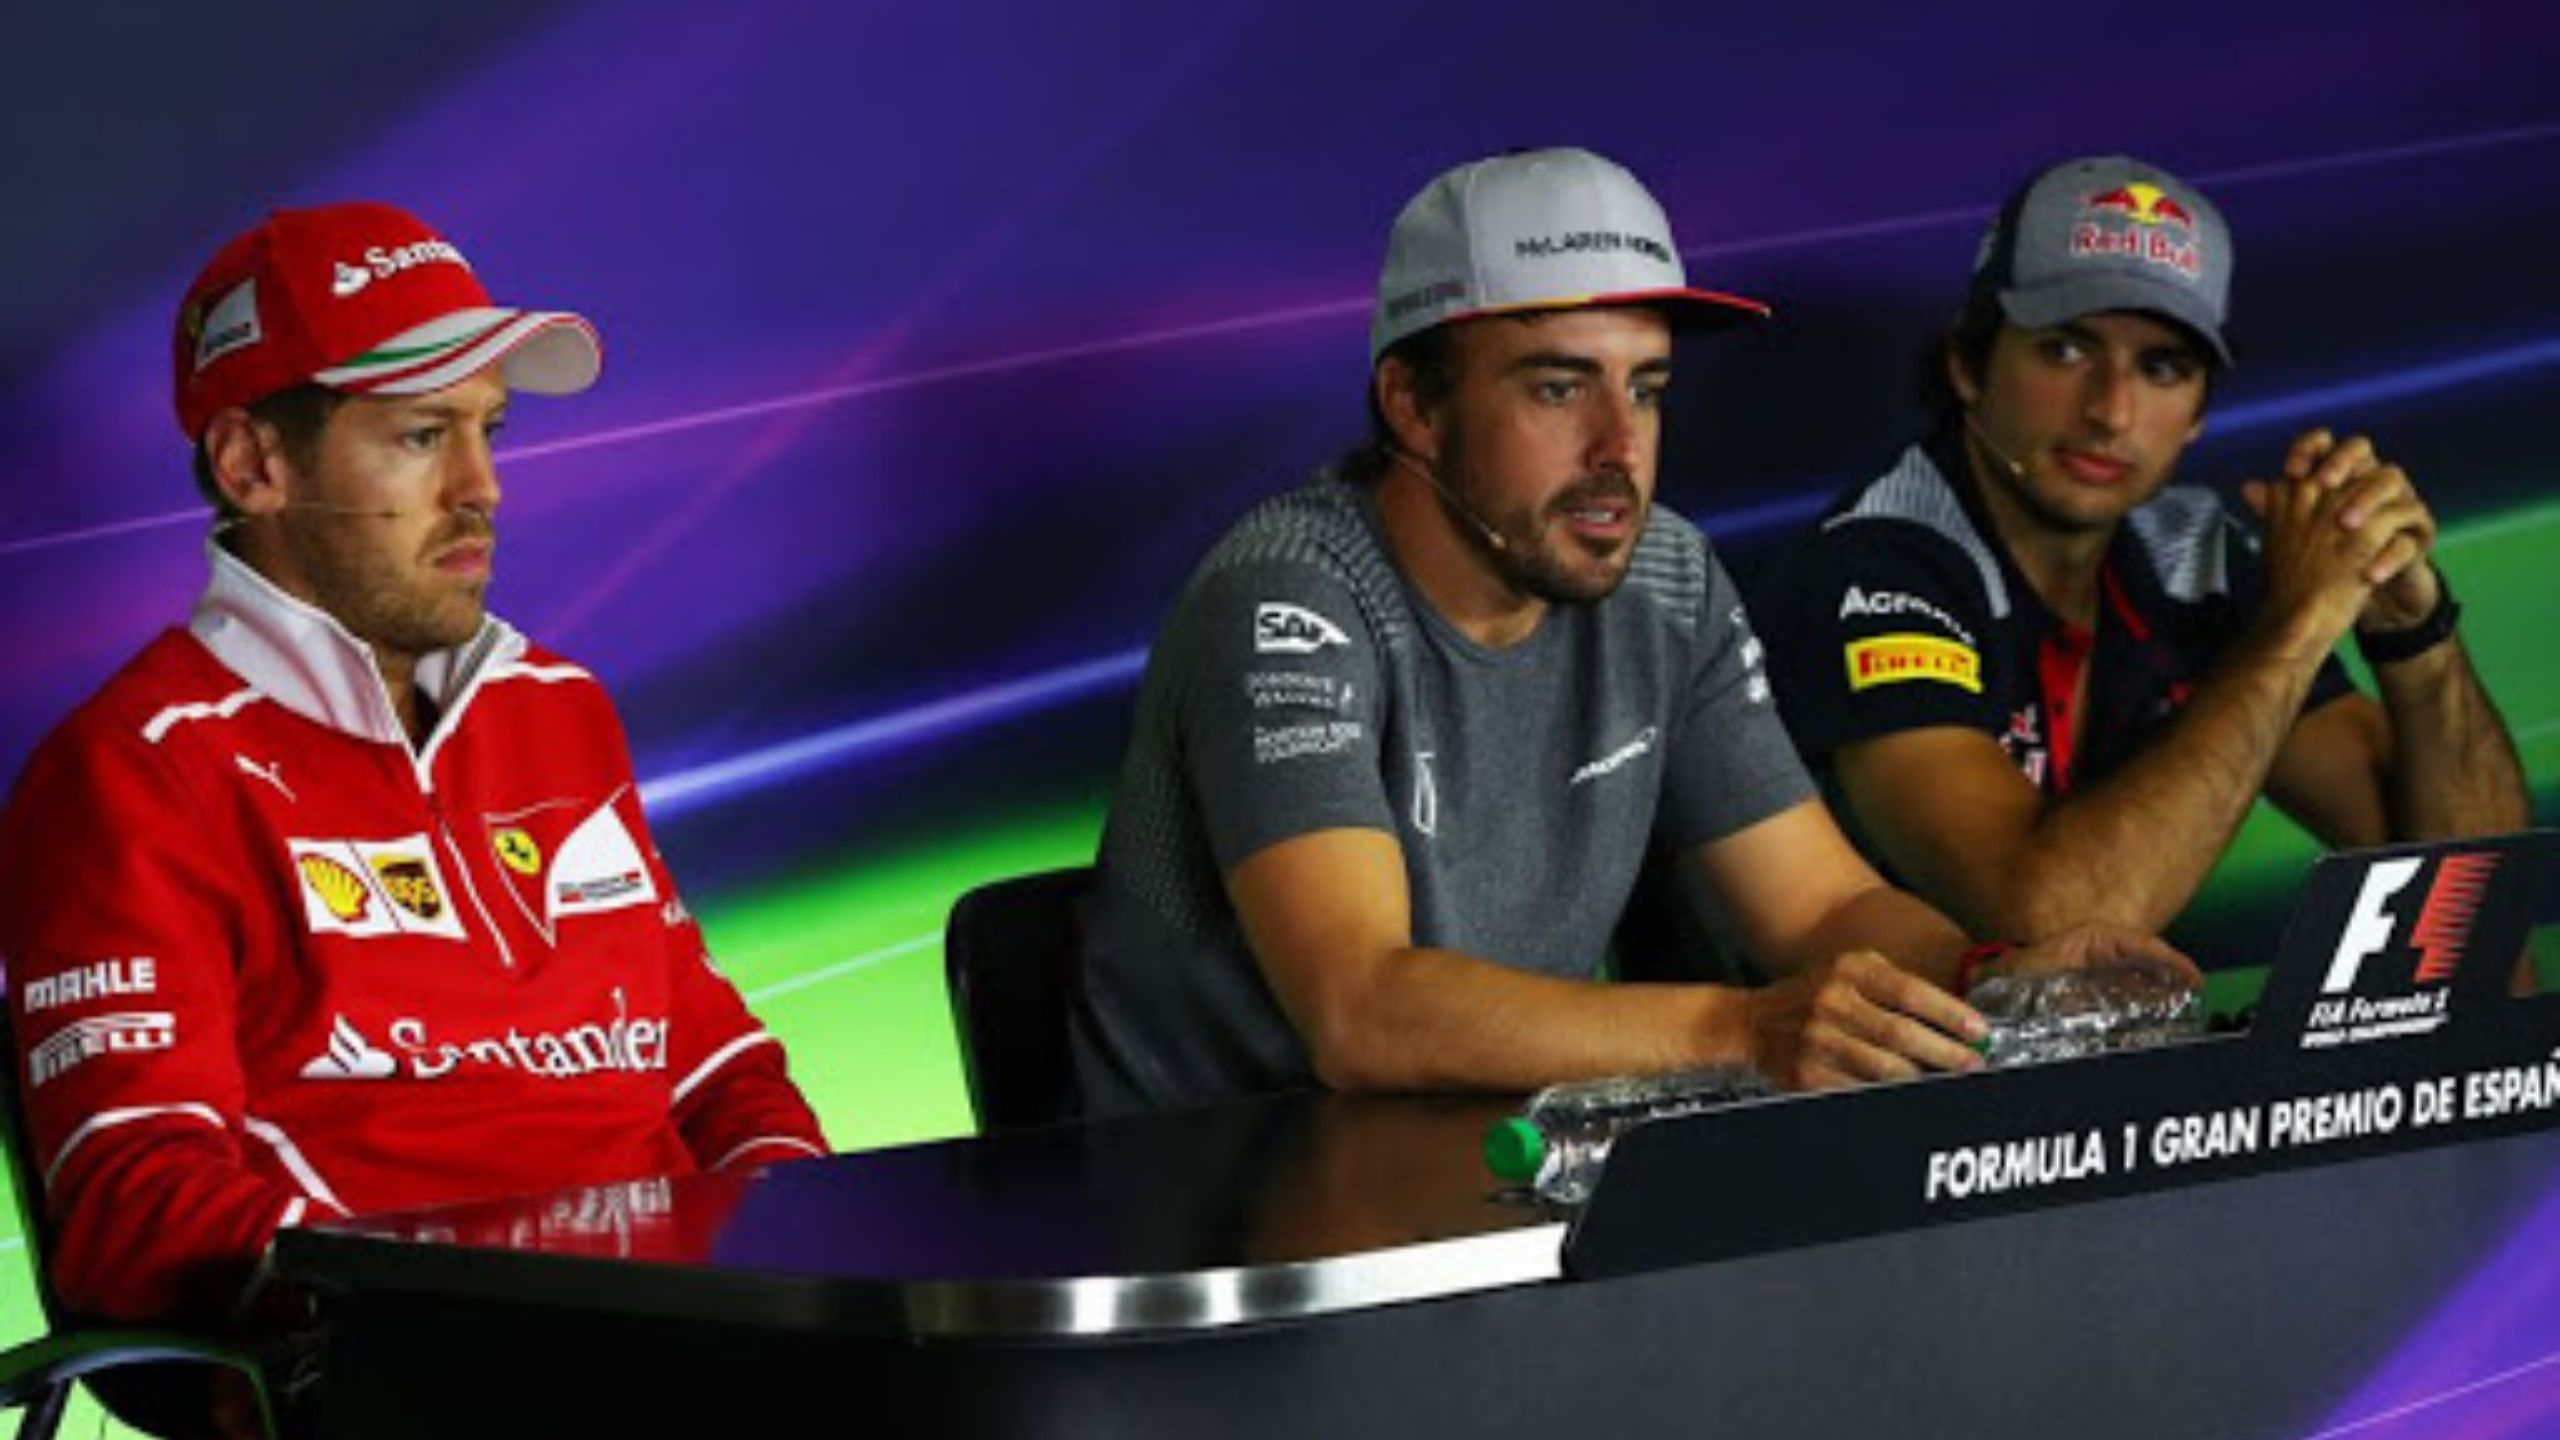 F1 Young Drivers Test: Carlos Sainz, Sebastian Vettel infuriated after being rejected for Abu Dhabi test, but Fernando Alonso is permitted